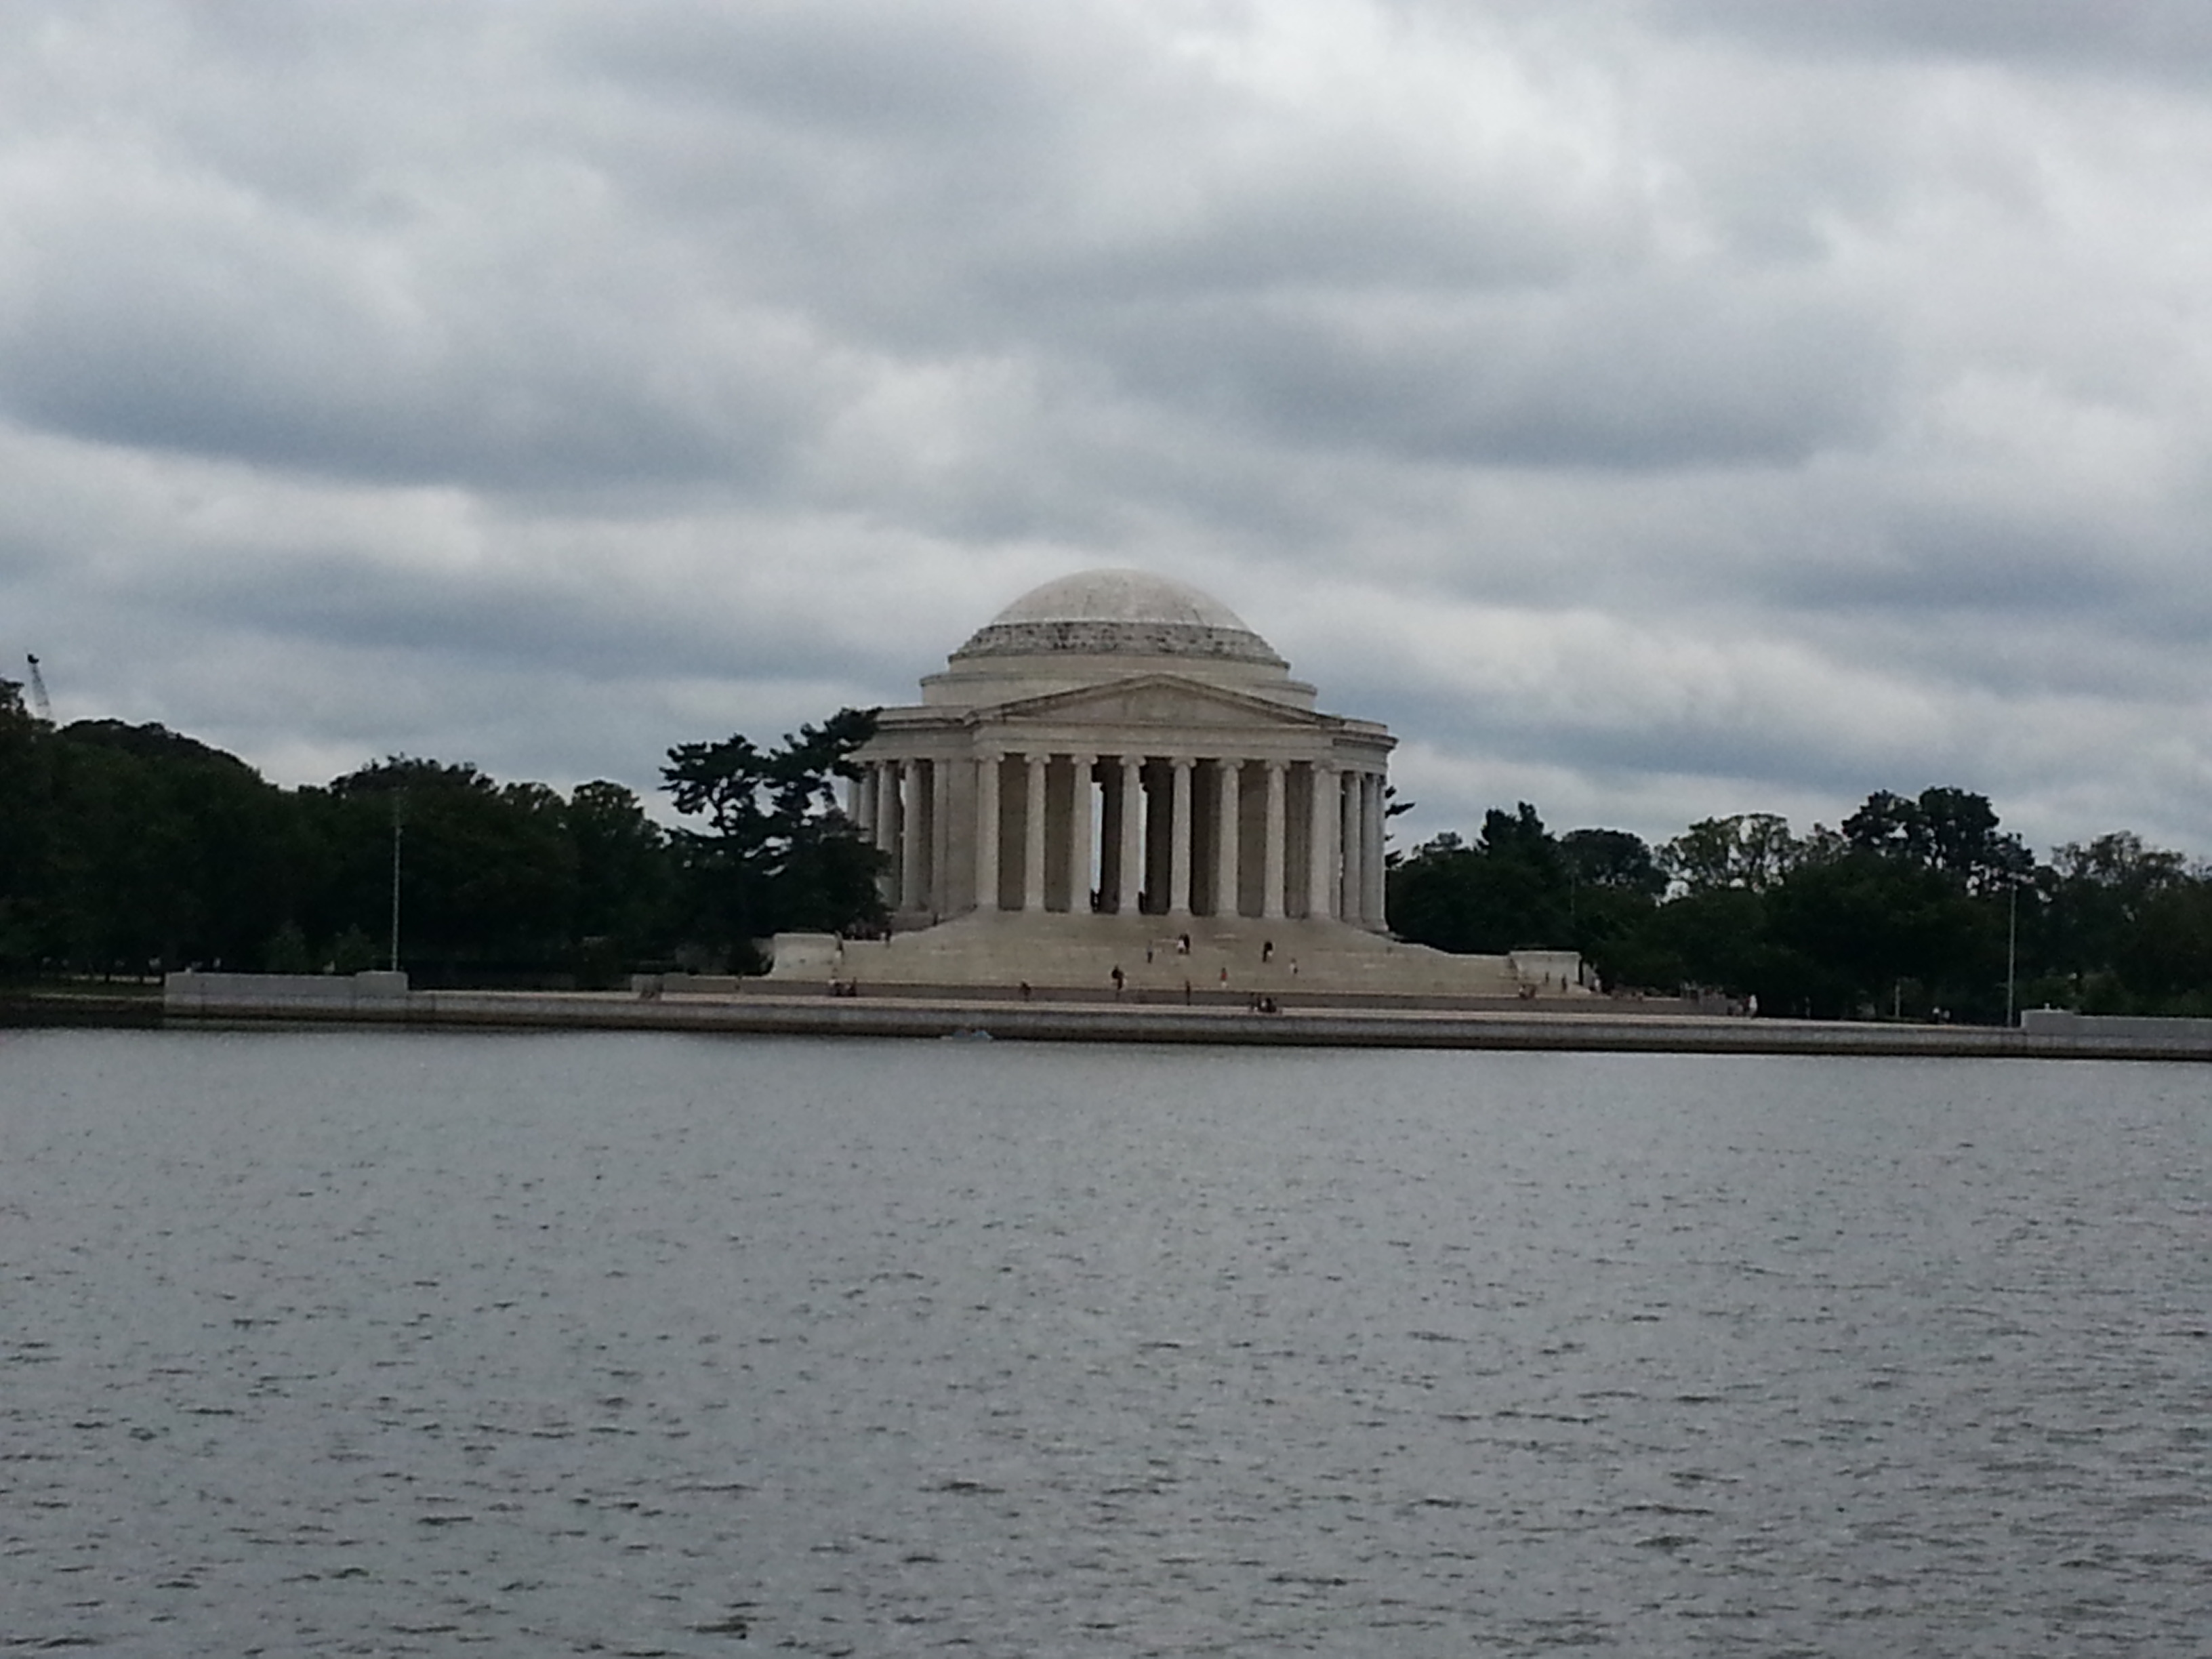 Thomas Jefferson Memorial across the Washington Channel